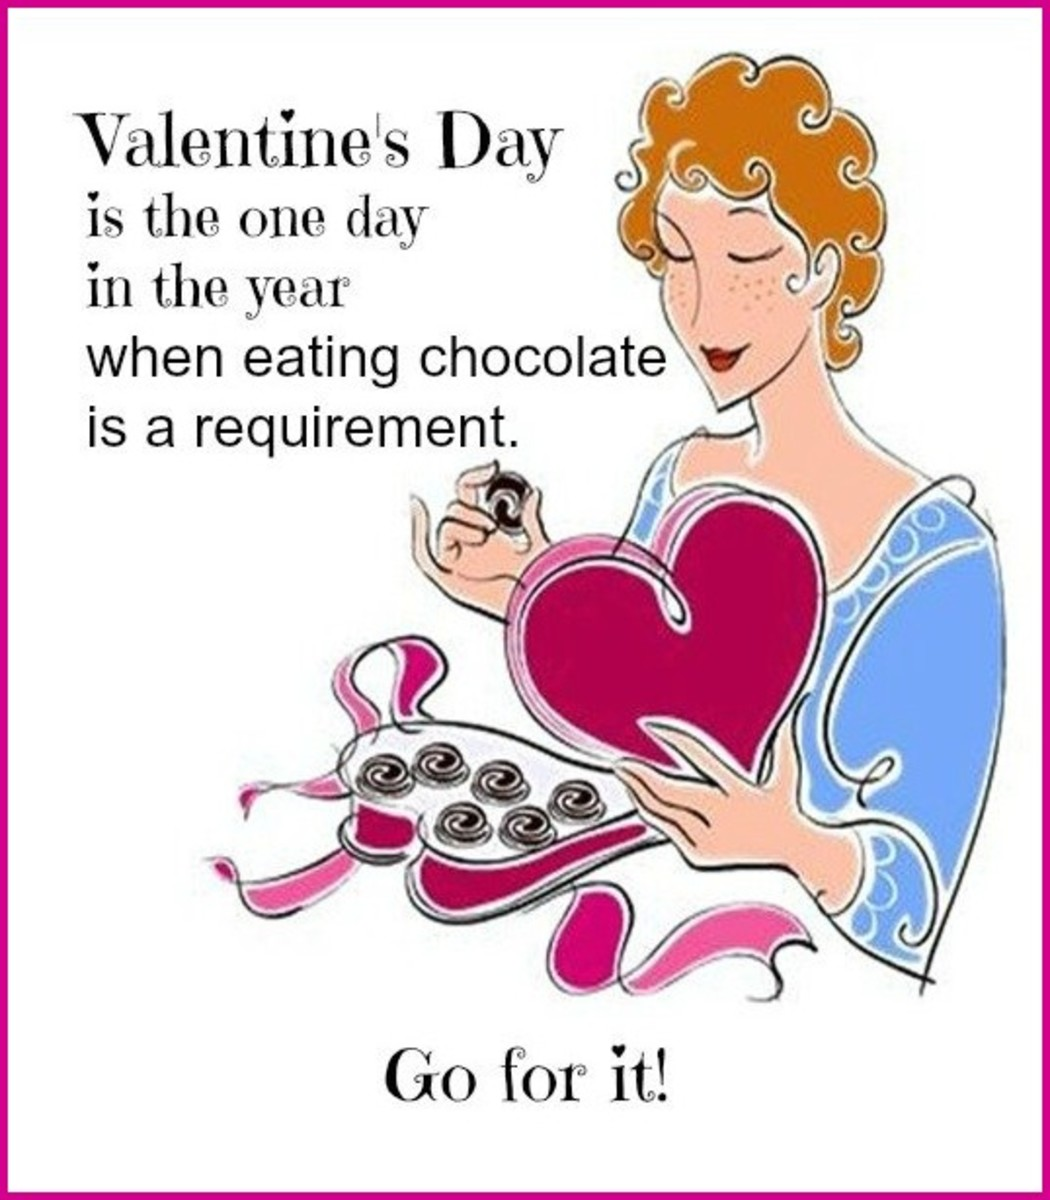 Funny Valentine's Day Card about Eating Chocolate